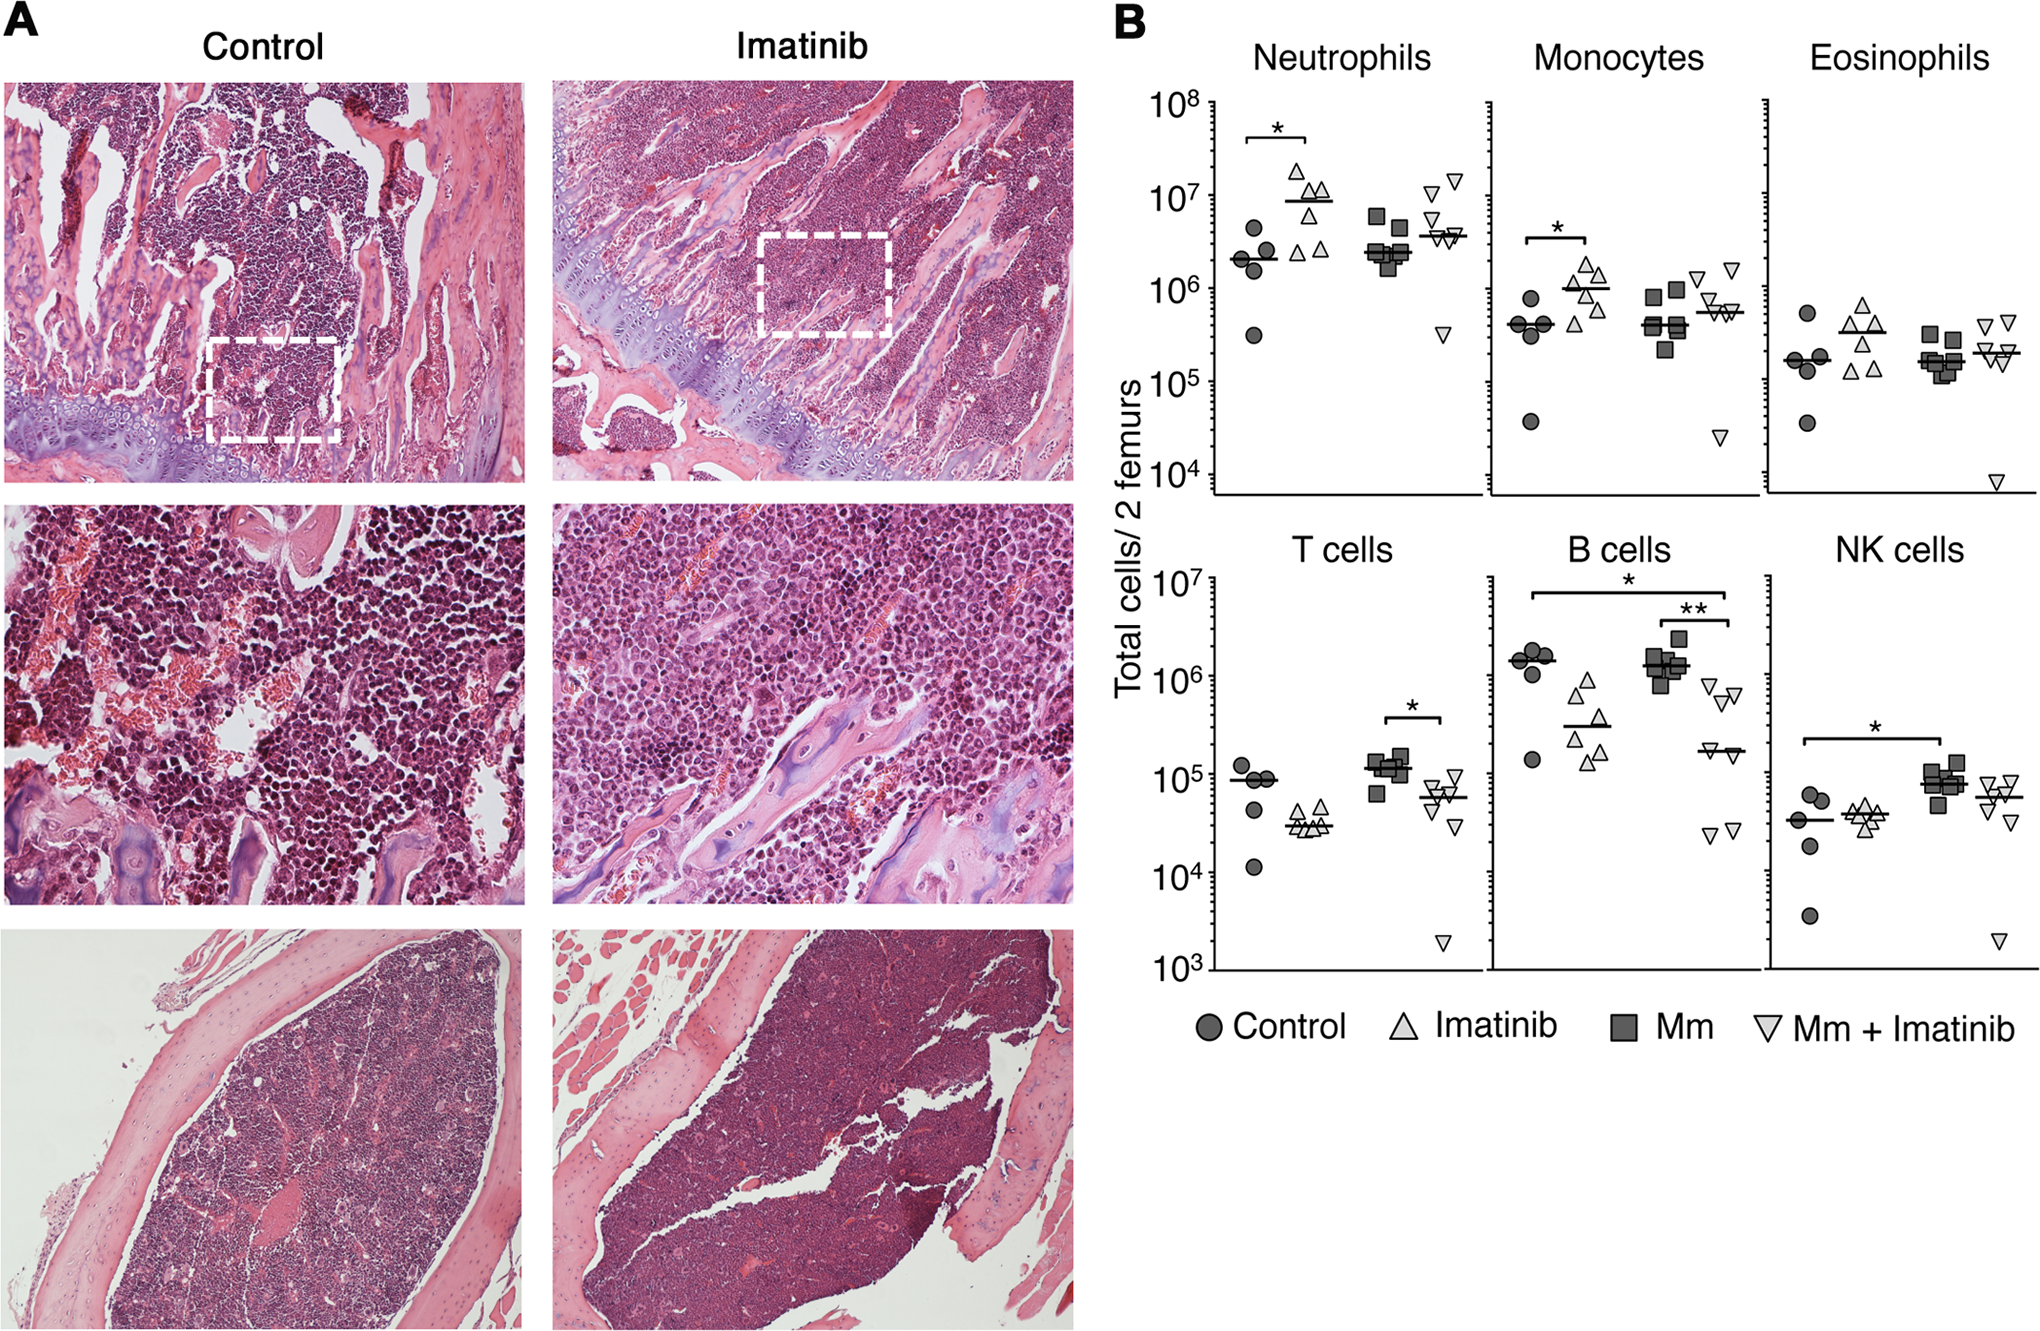 Effects of imatinib on neutrophils and monoctyes in bone marrow.